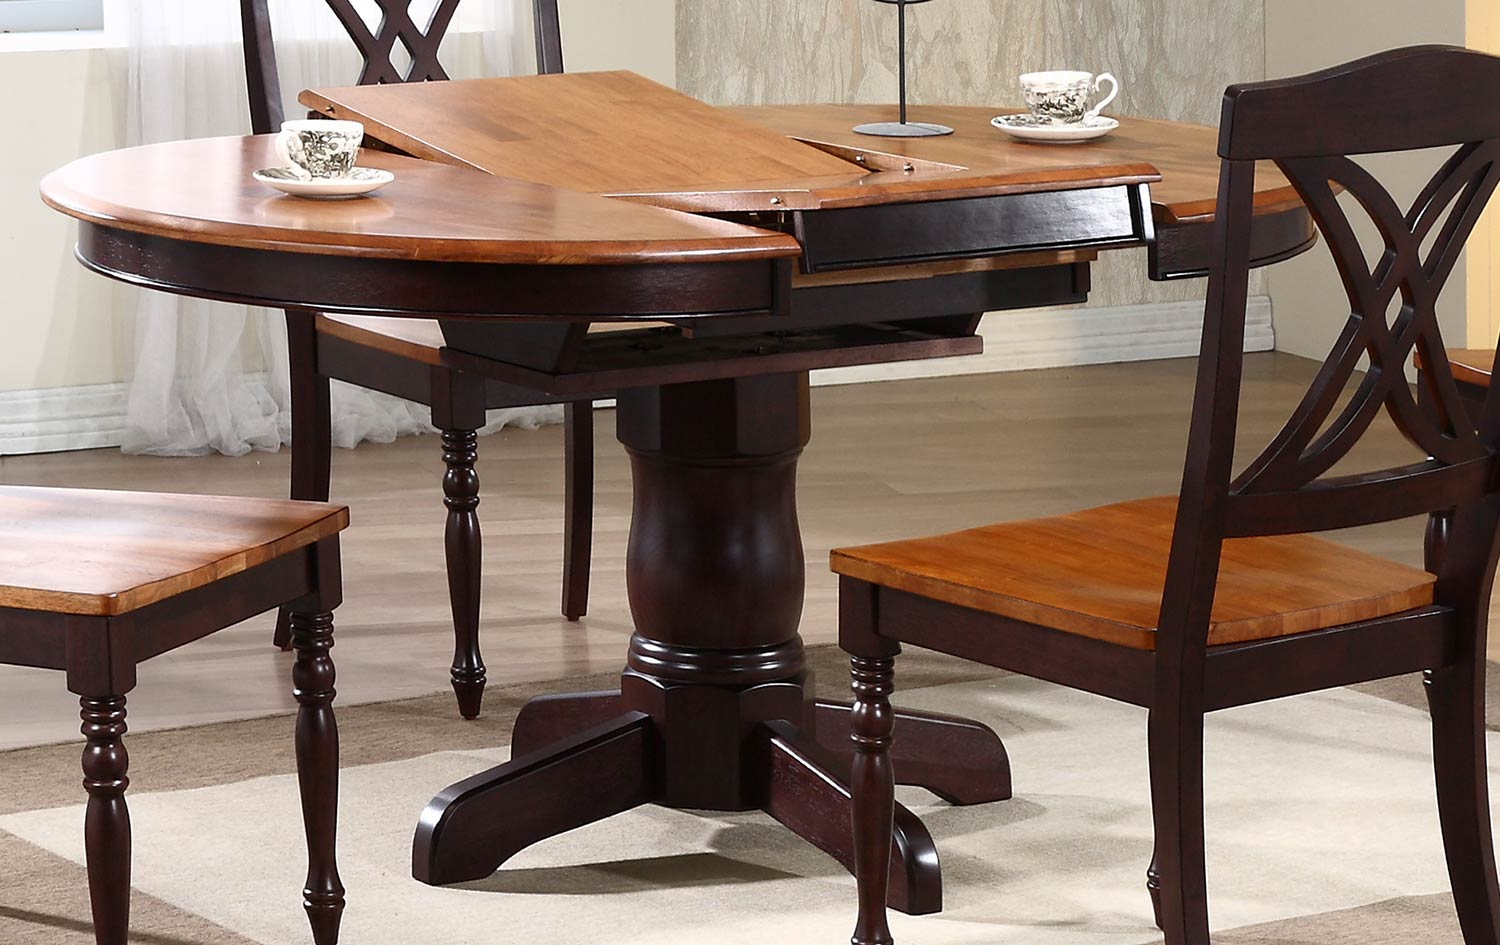 Oval Kitchen Table Pedestal Iconic Furniture Round Oval Pedestal Dining Table Whiskey Mocha